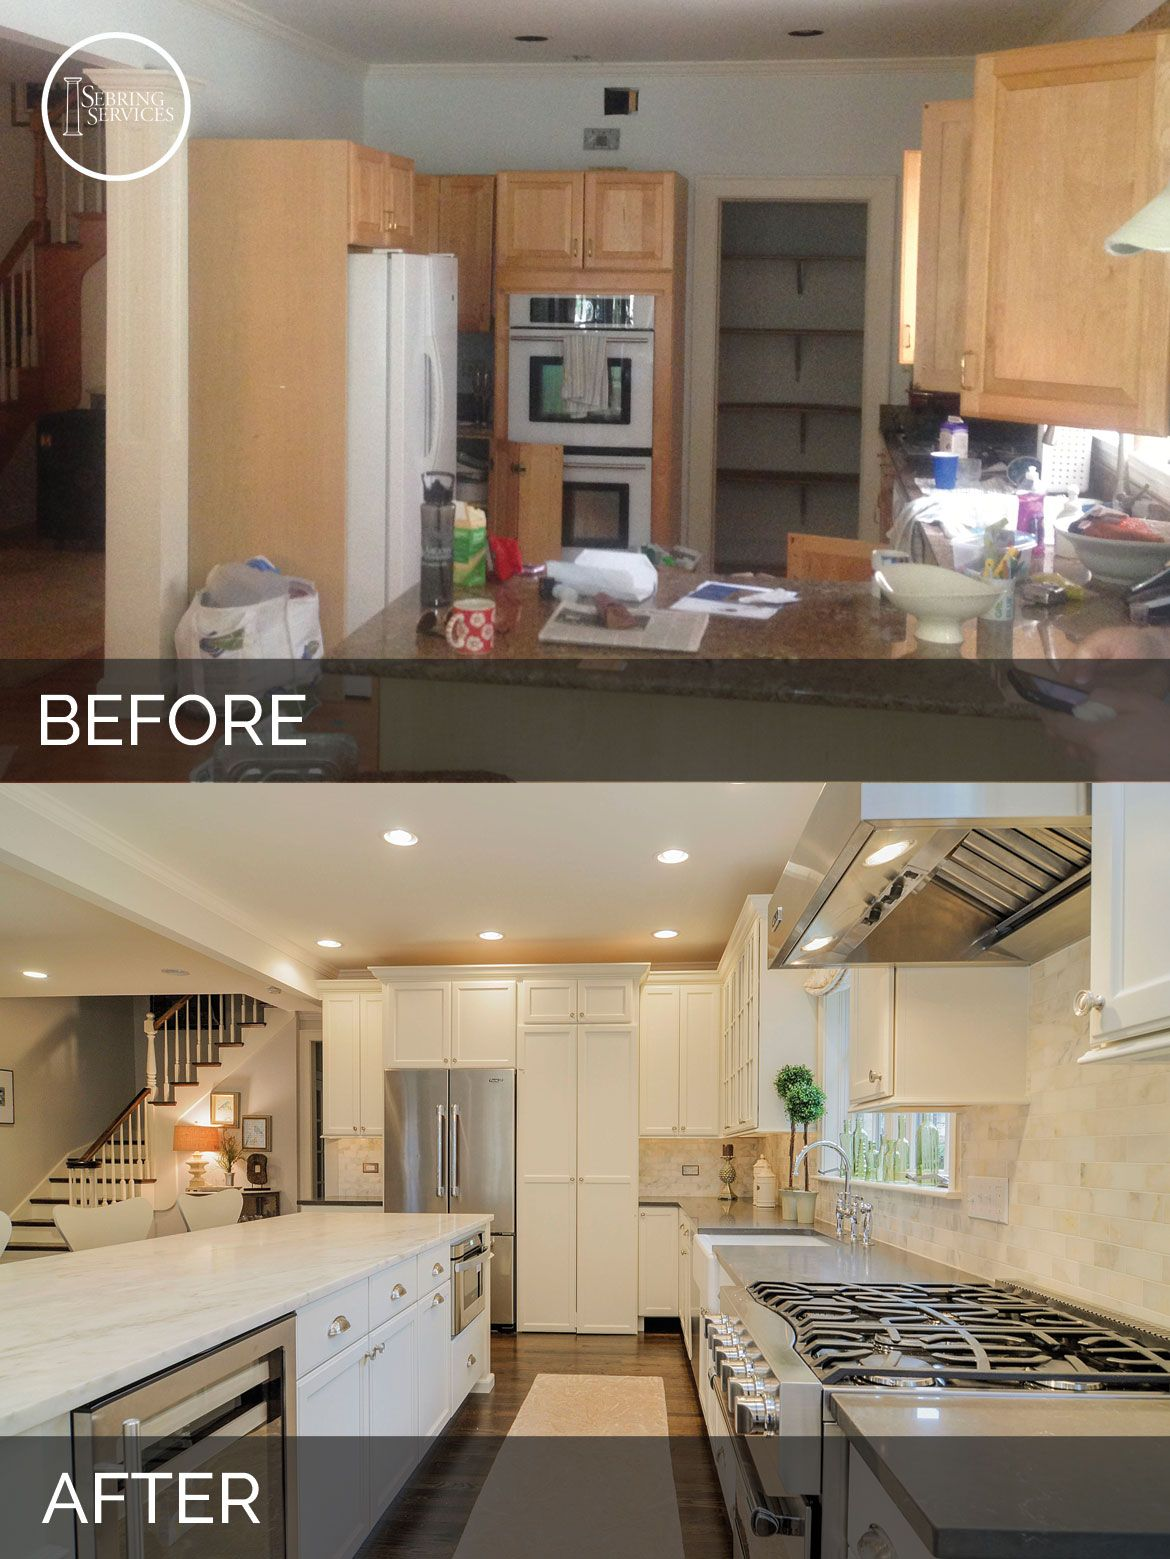 ben & ellen's kitchen before & after | home remodeling contractors